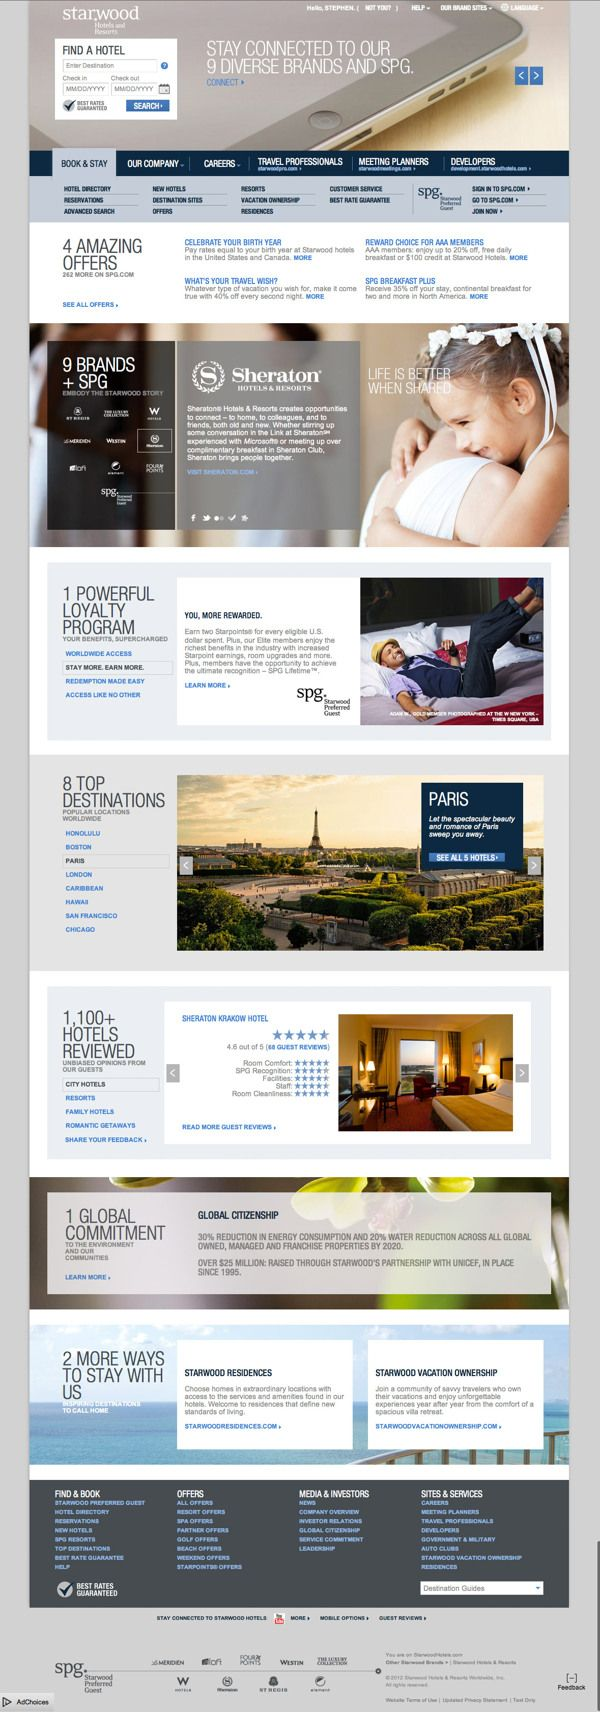 Starwood Hotels & Resorts Corporate Site Design by Stephen Gates, via Behance